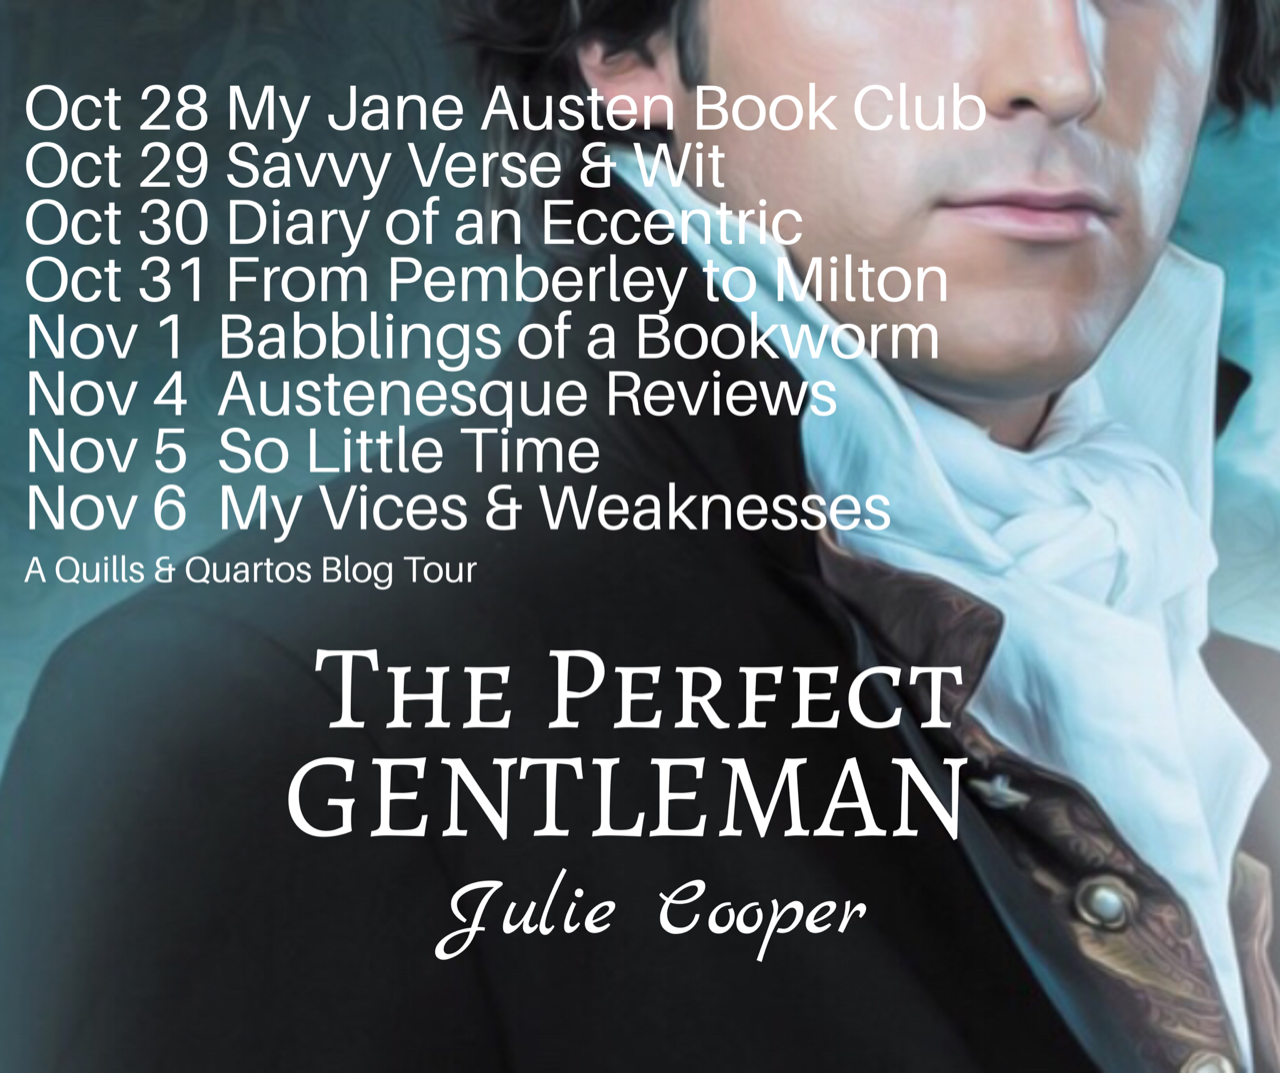 The Perfect Gentleman by Julie Cooper